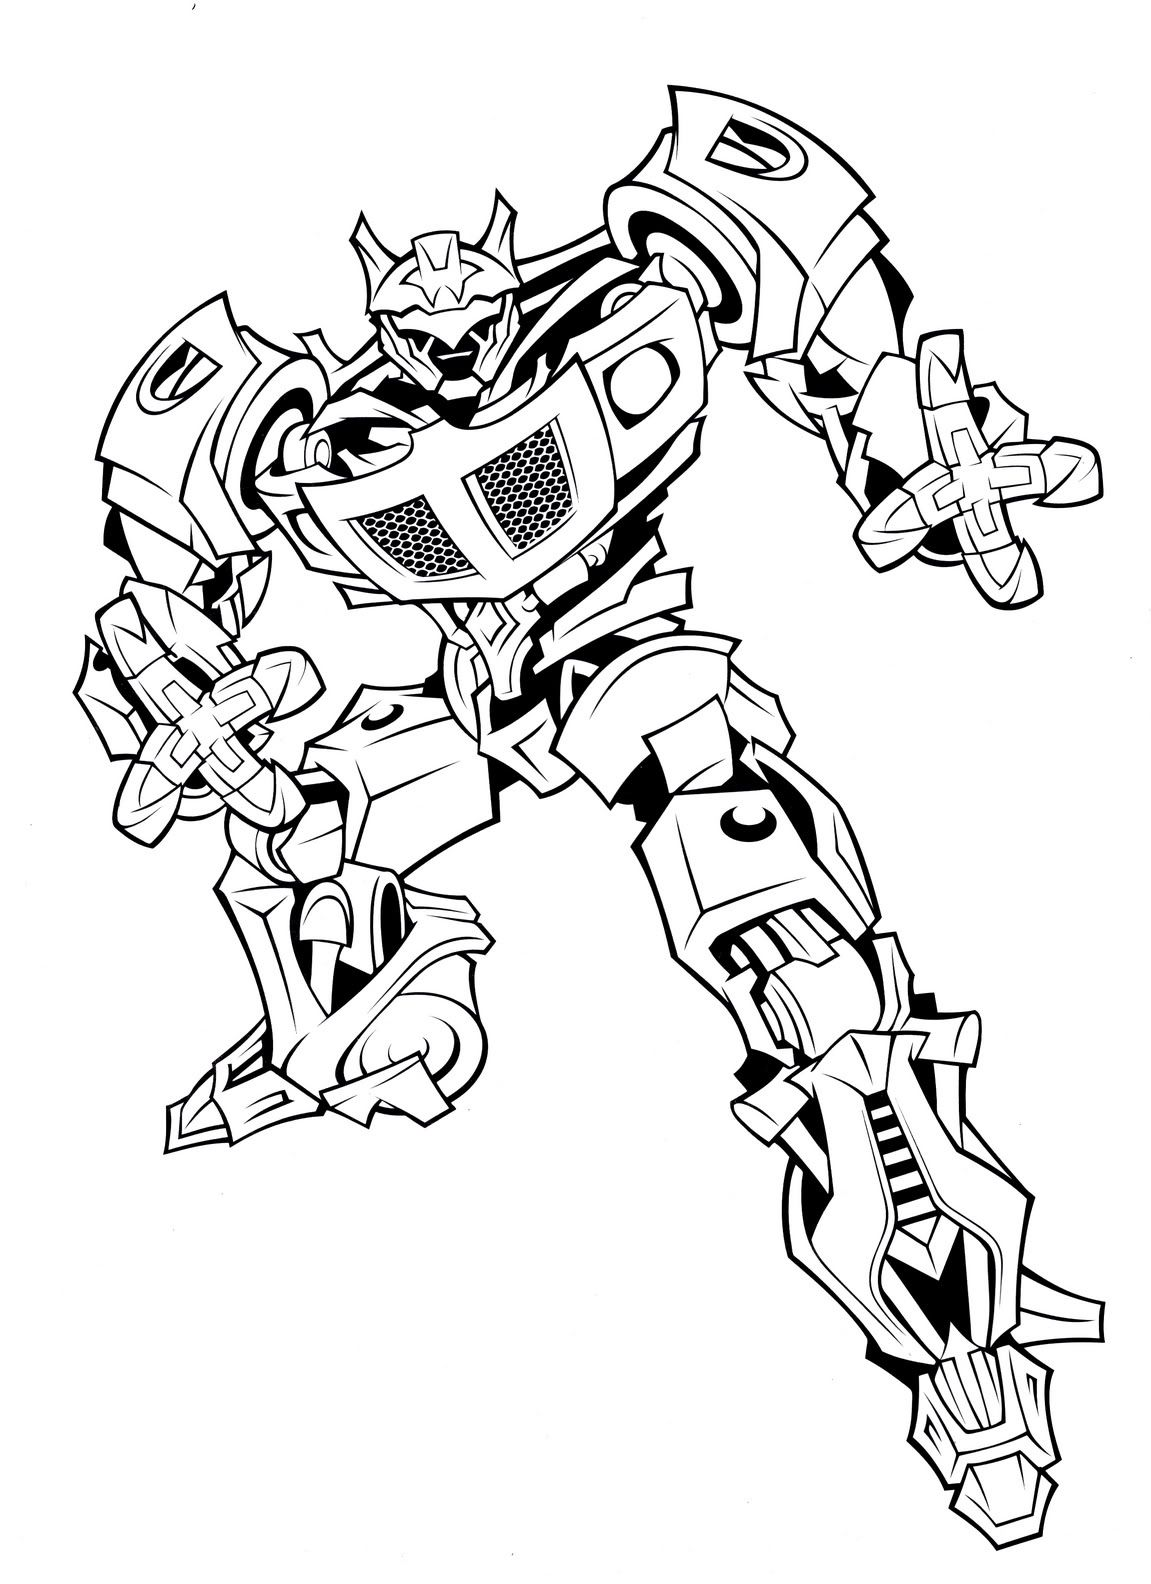 Color And Print Transformers In 2020 Bee Coloring Pages Transformers Coloring Pages Coloring Pages